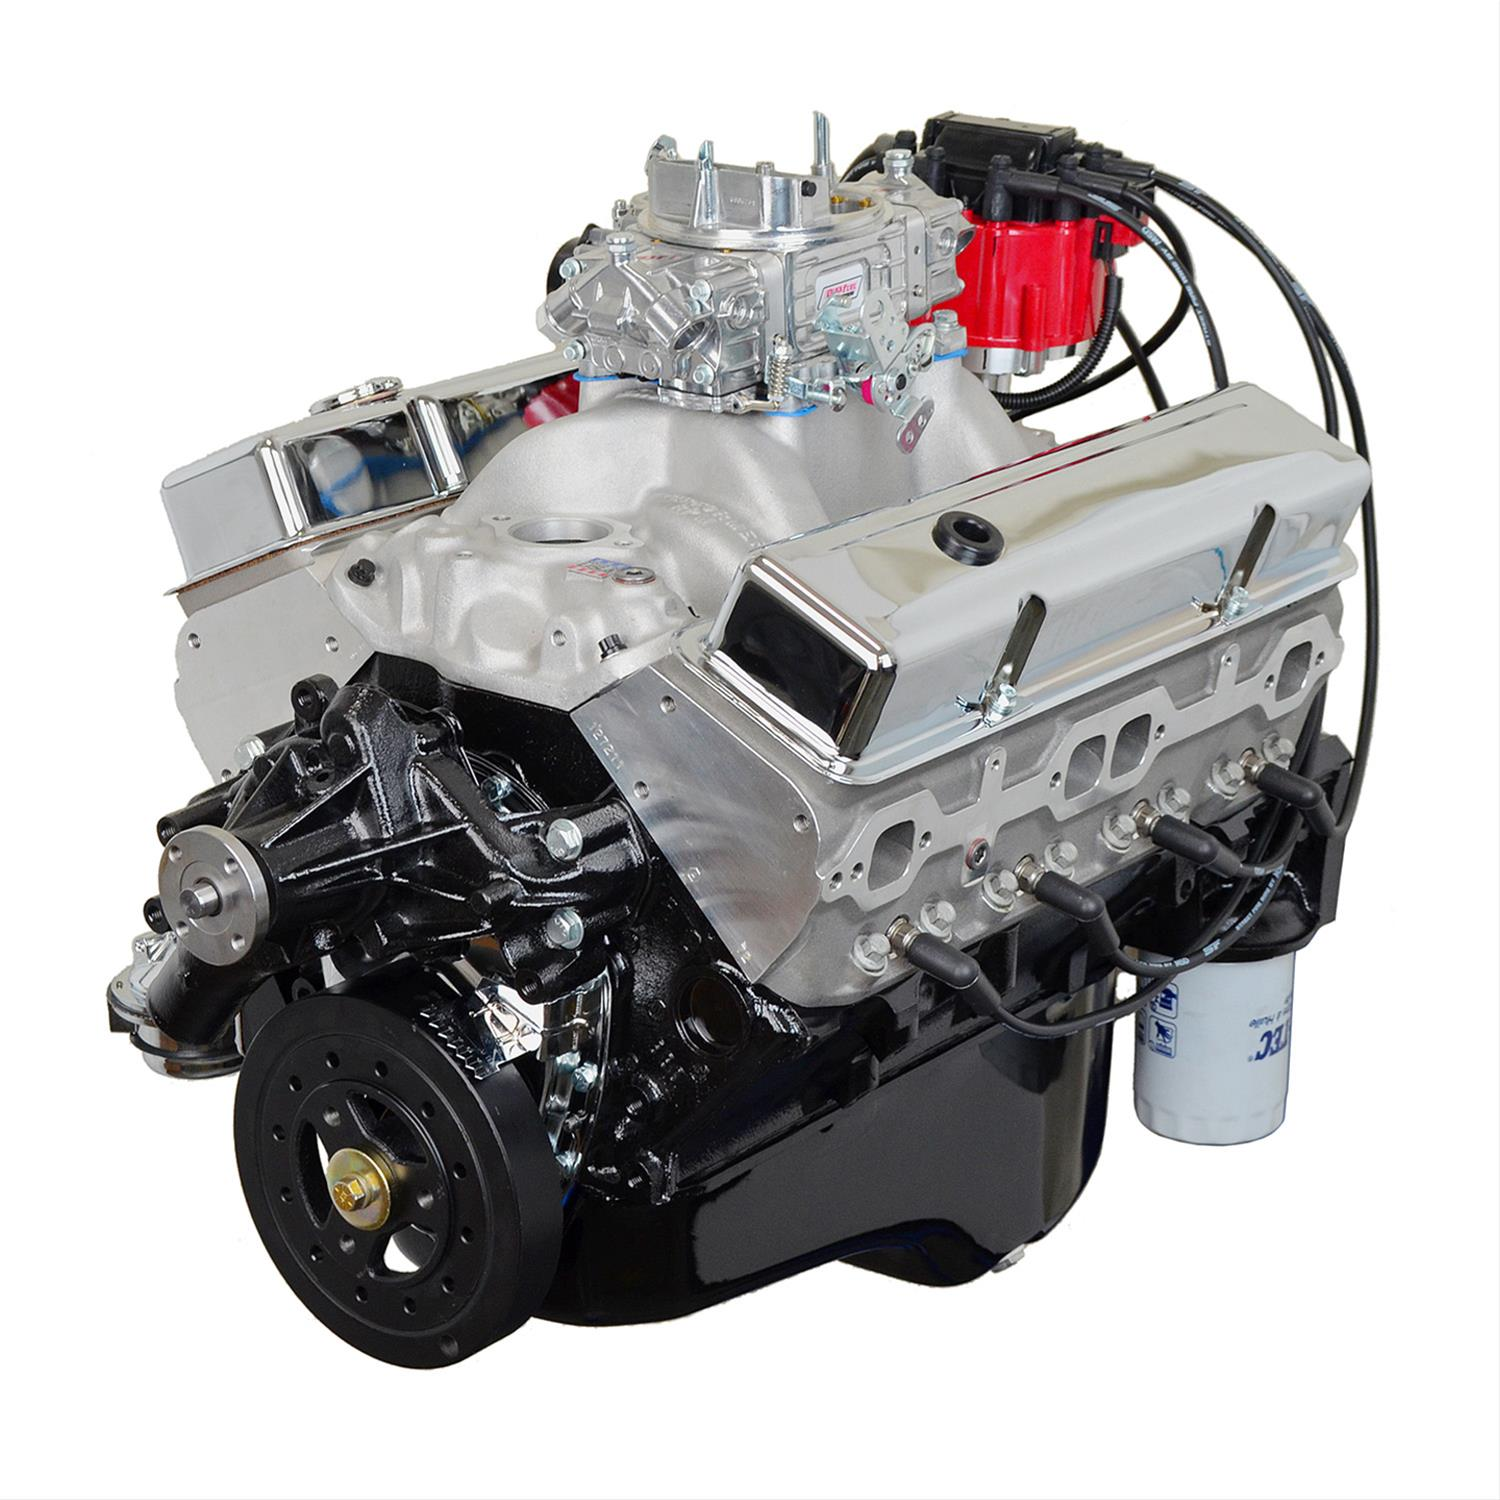 Atk High Performance Gm 383 Stroker 435hp Stage 3 Crate Engines Jeep 4 0 Engine For Sale Hp36c Free Shipping On Orders Over 99 At Summit Racing